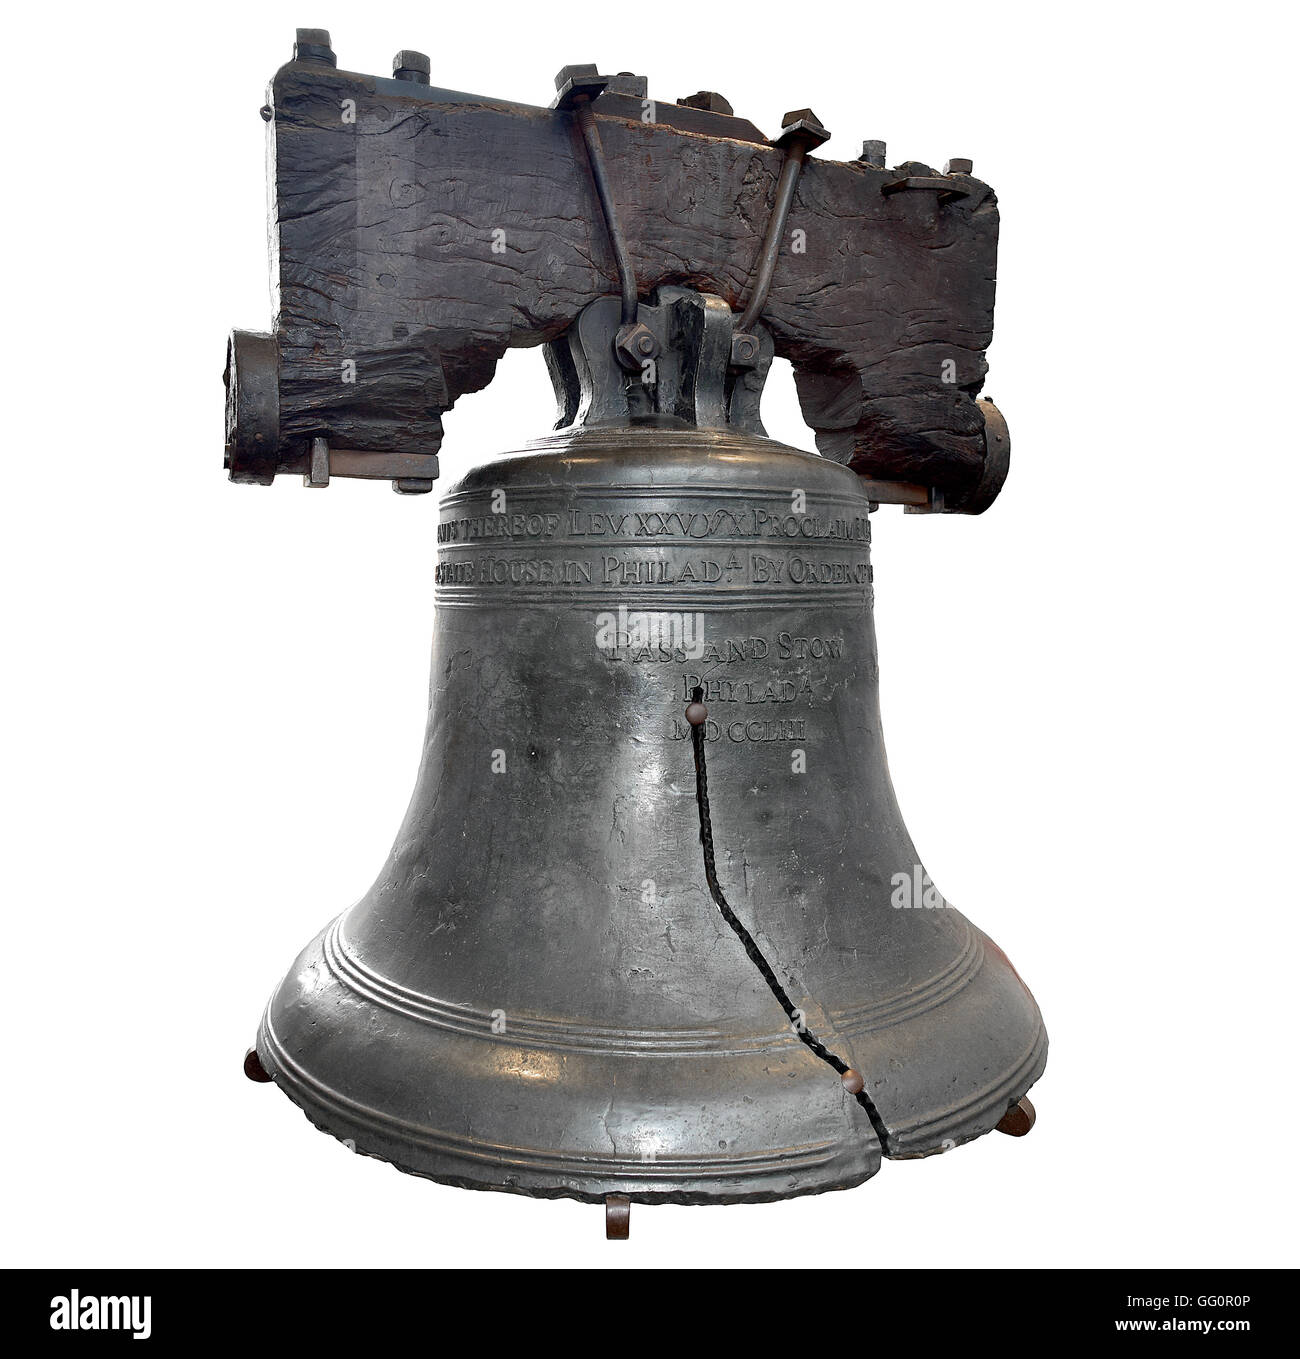 U.S. Liberty Bell in Philadelphia Isolated on White Background - Stock Image